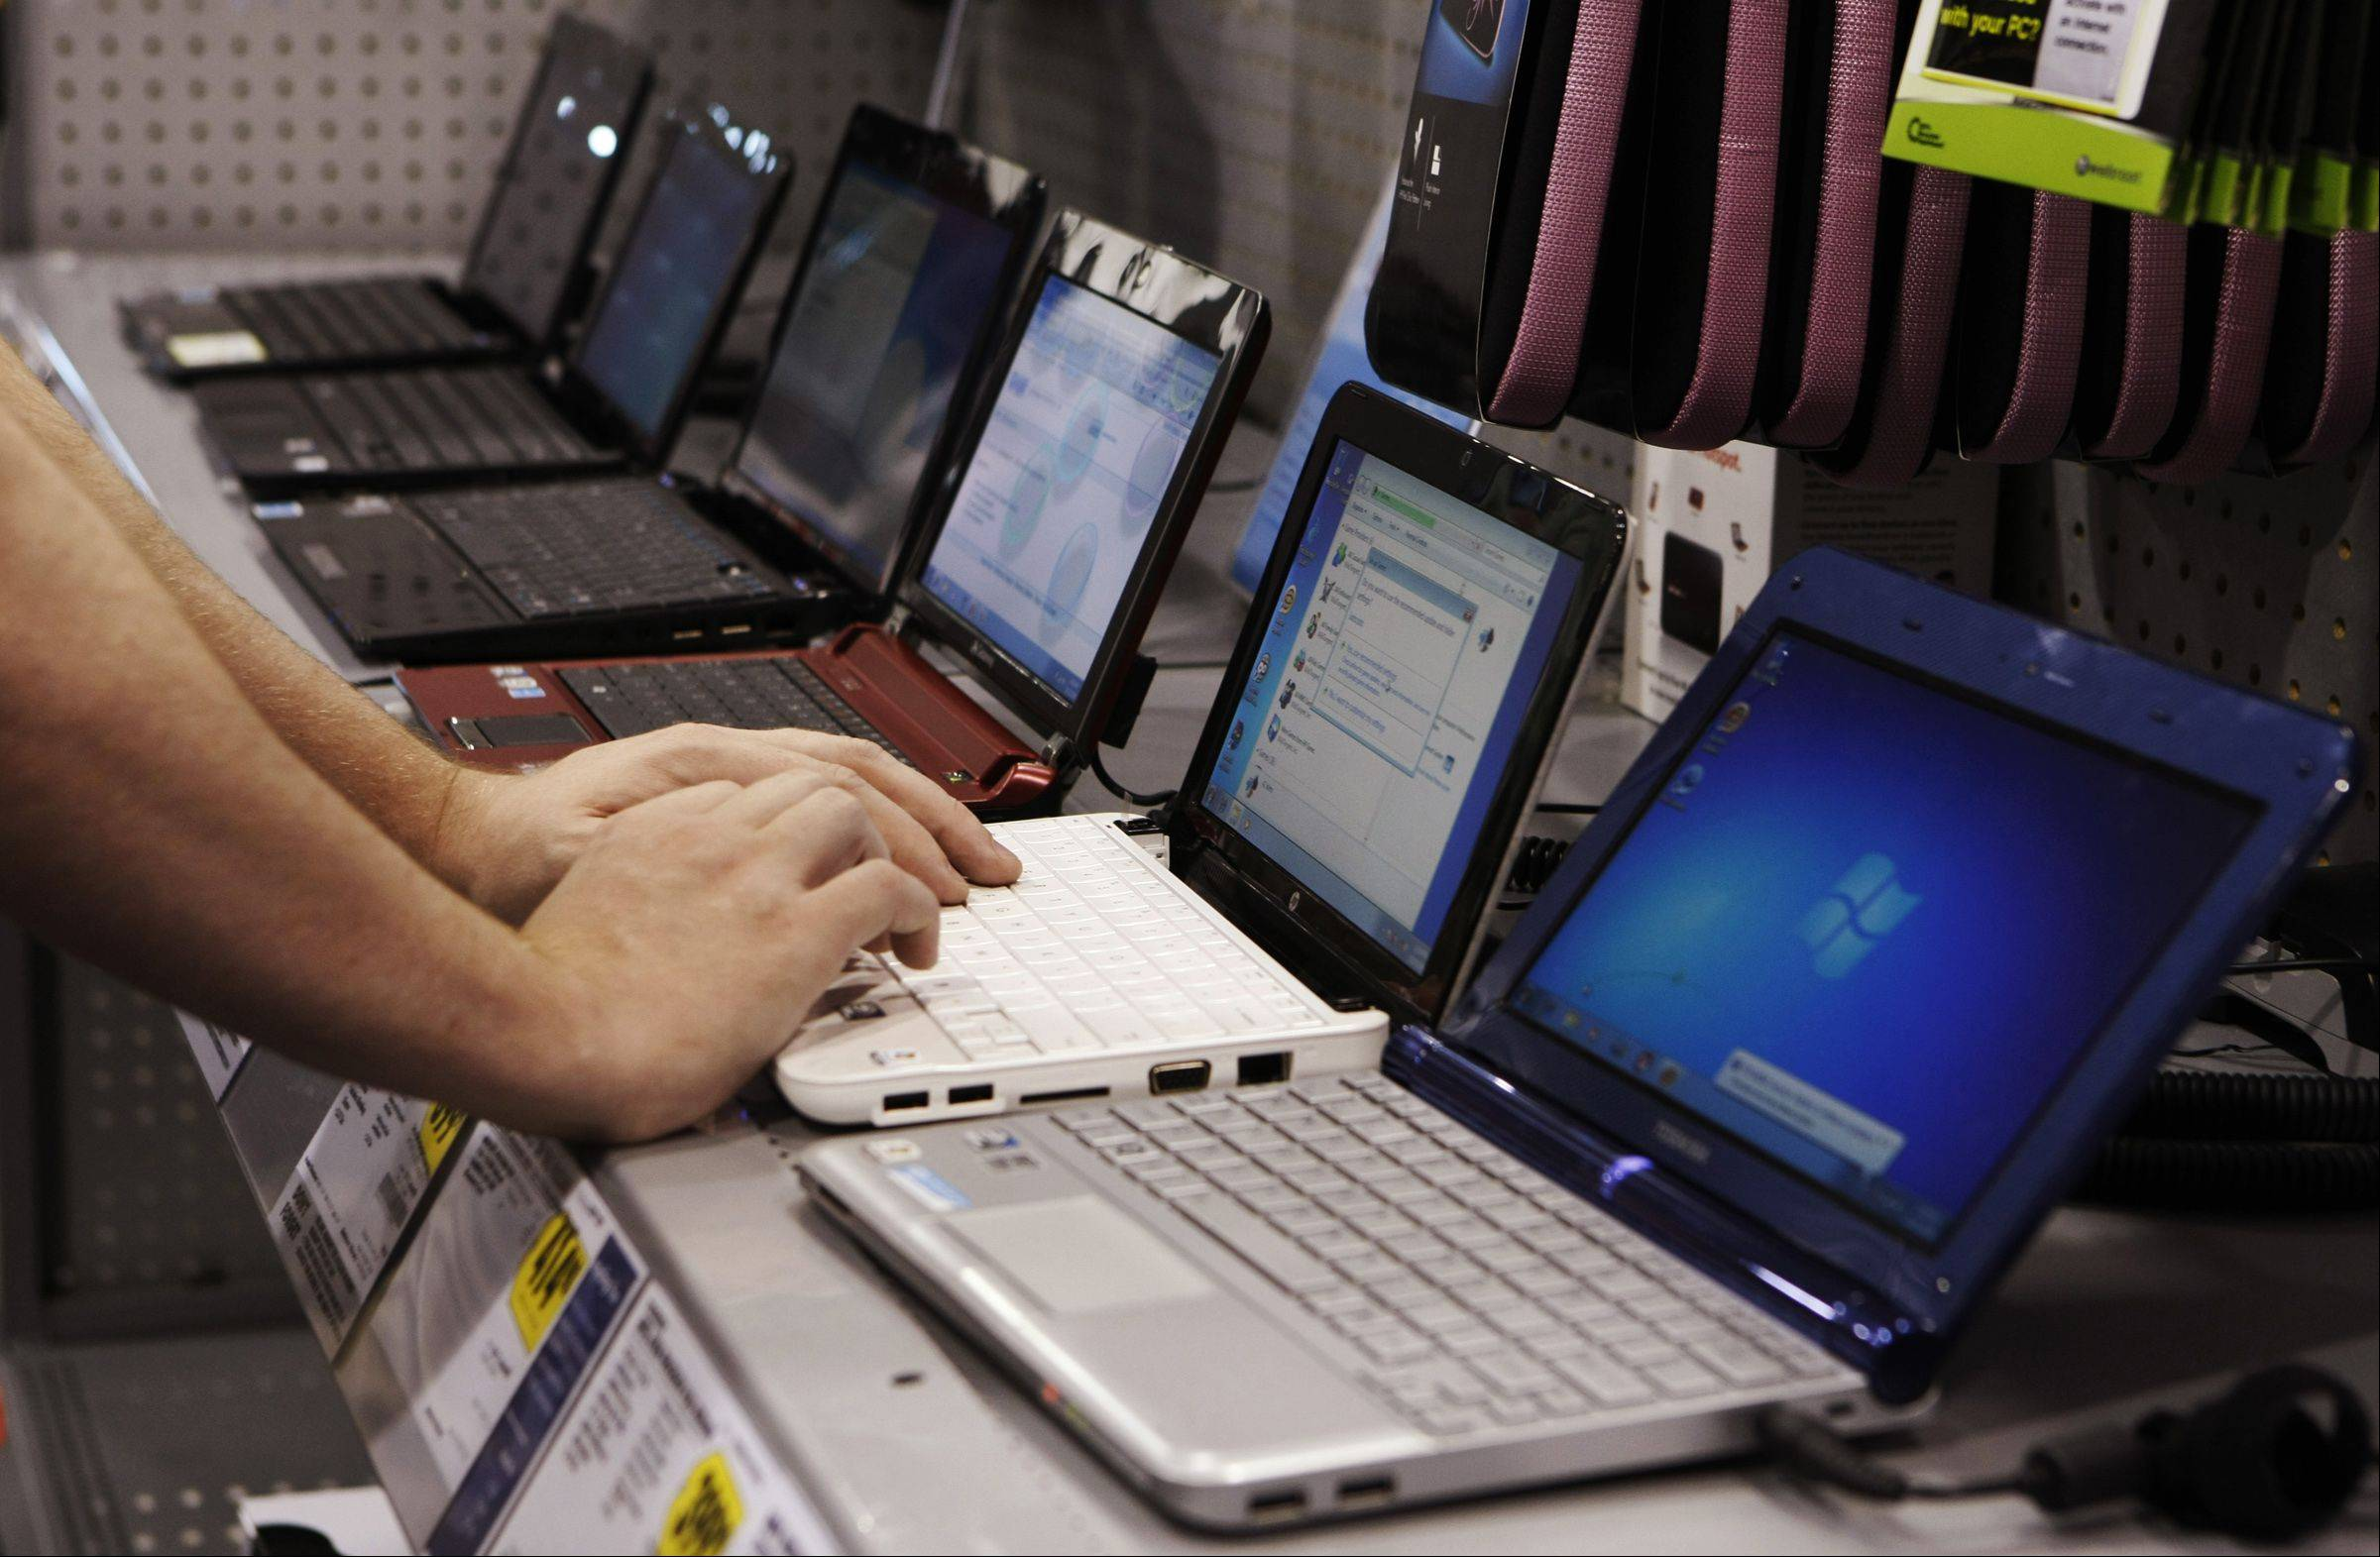 Consumers and businesses have been buying fewer PCs during the past two years amid the growing popularity of smartphones and tablet computers such as Apple's iPad.